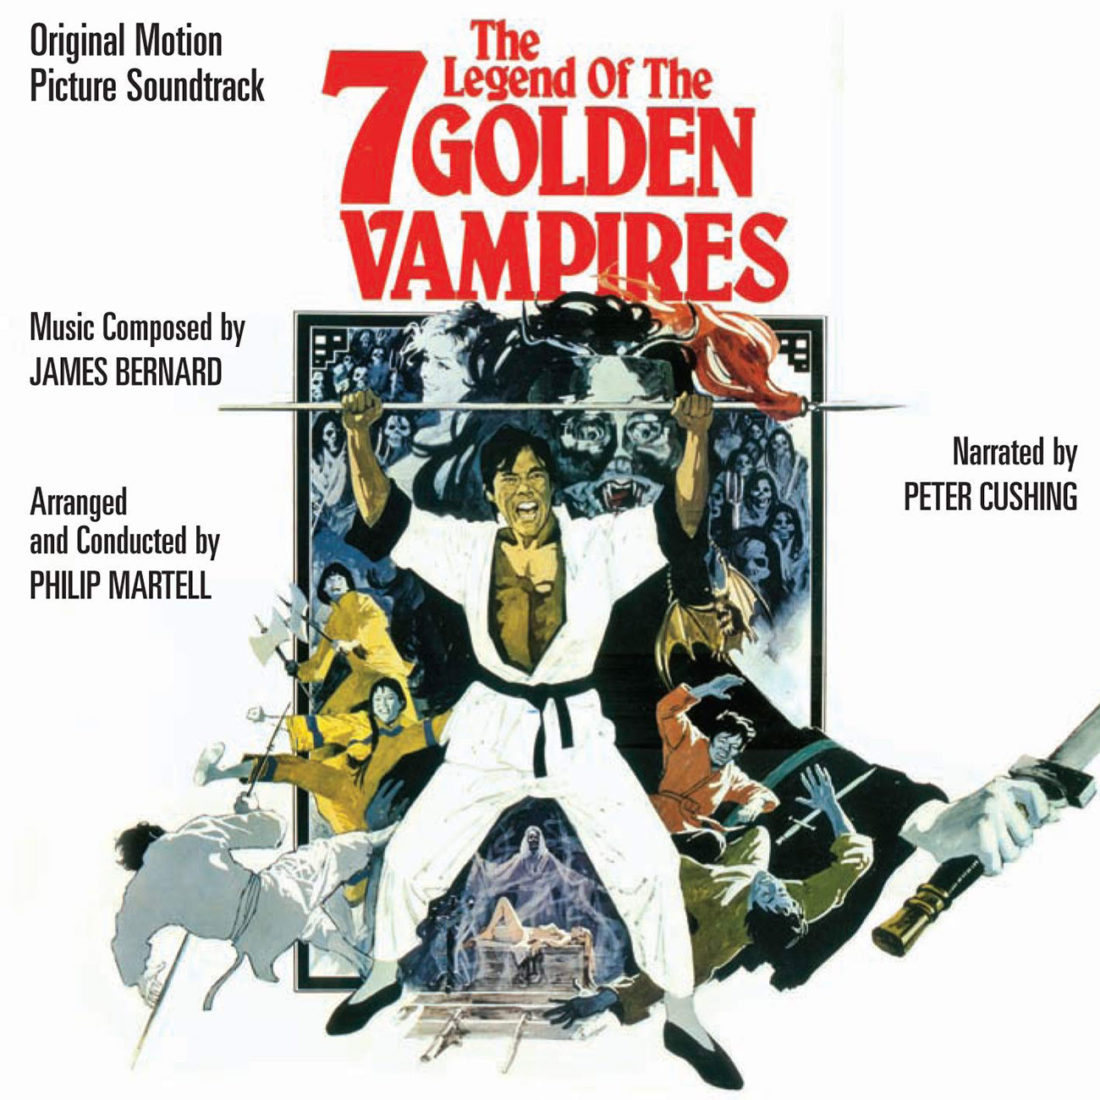 The Legend of the 7 Golden Vampires Original Motion Picture Soundtrack